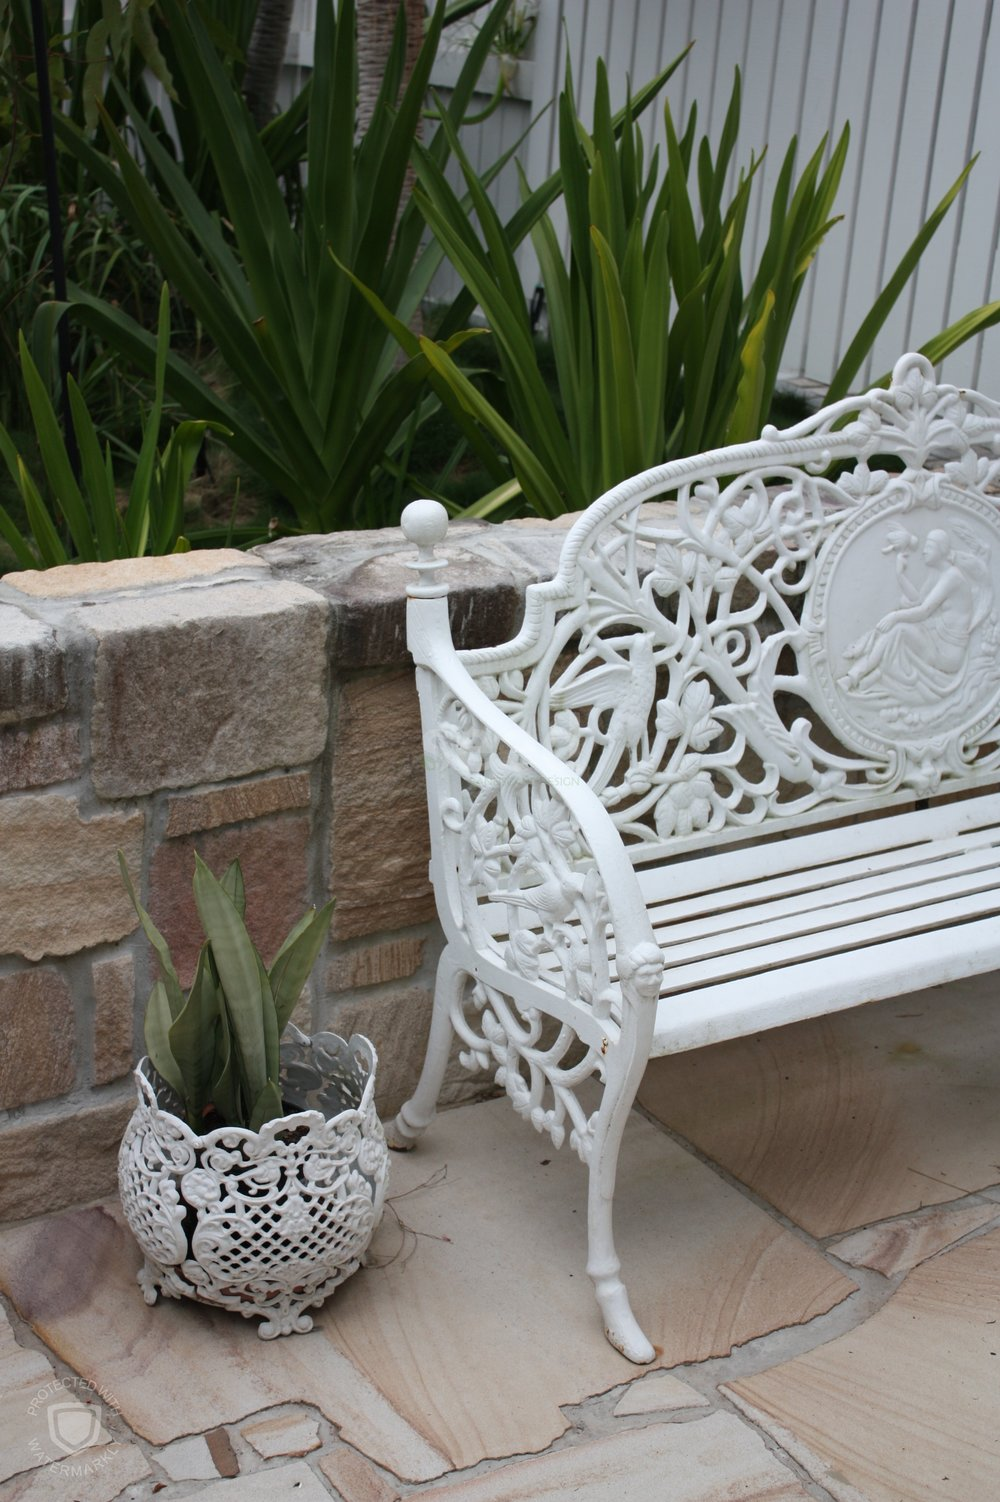 Details such as these white wrought iron pieces help to tie the white slates with the sandstone features.